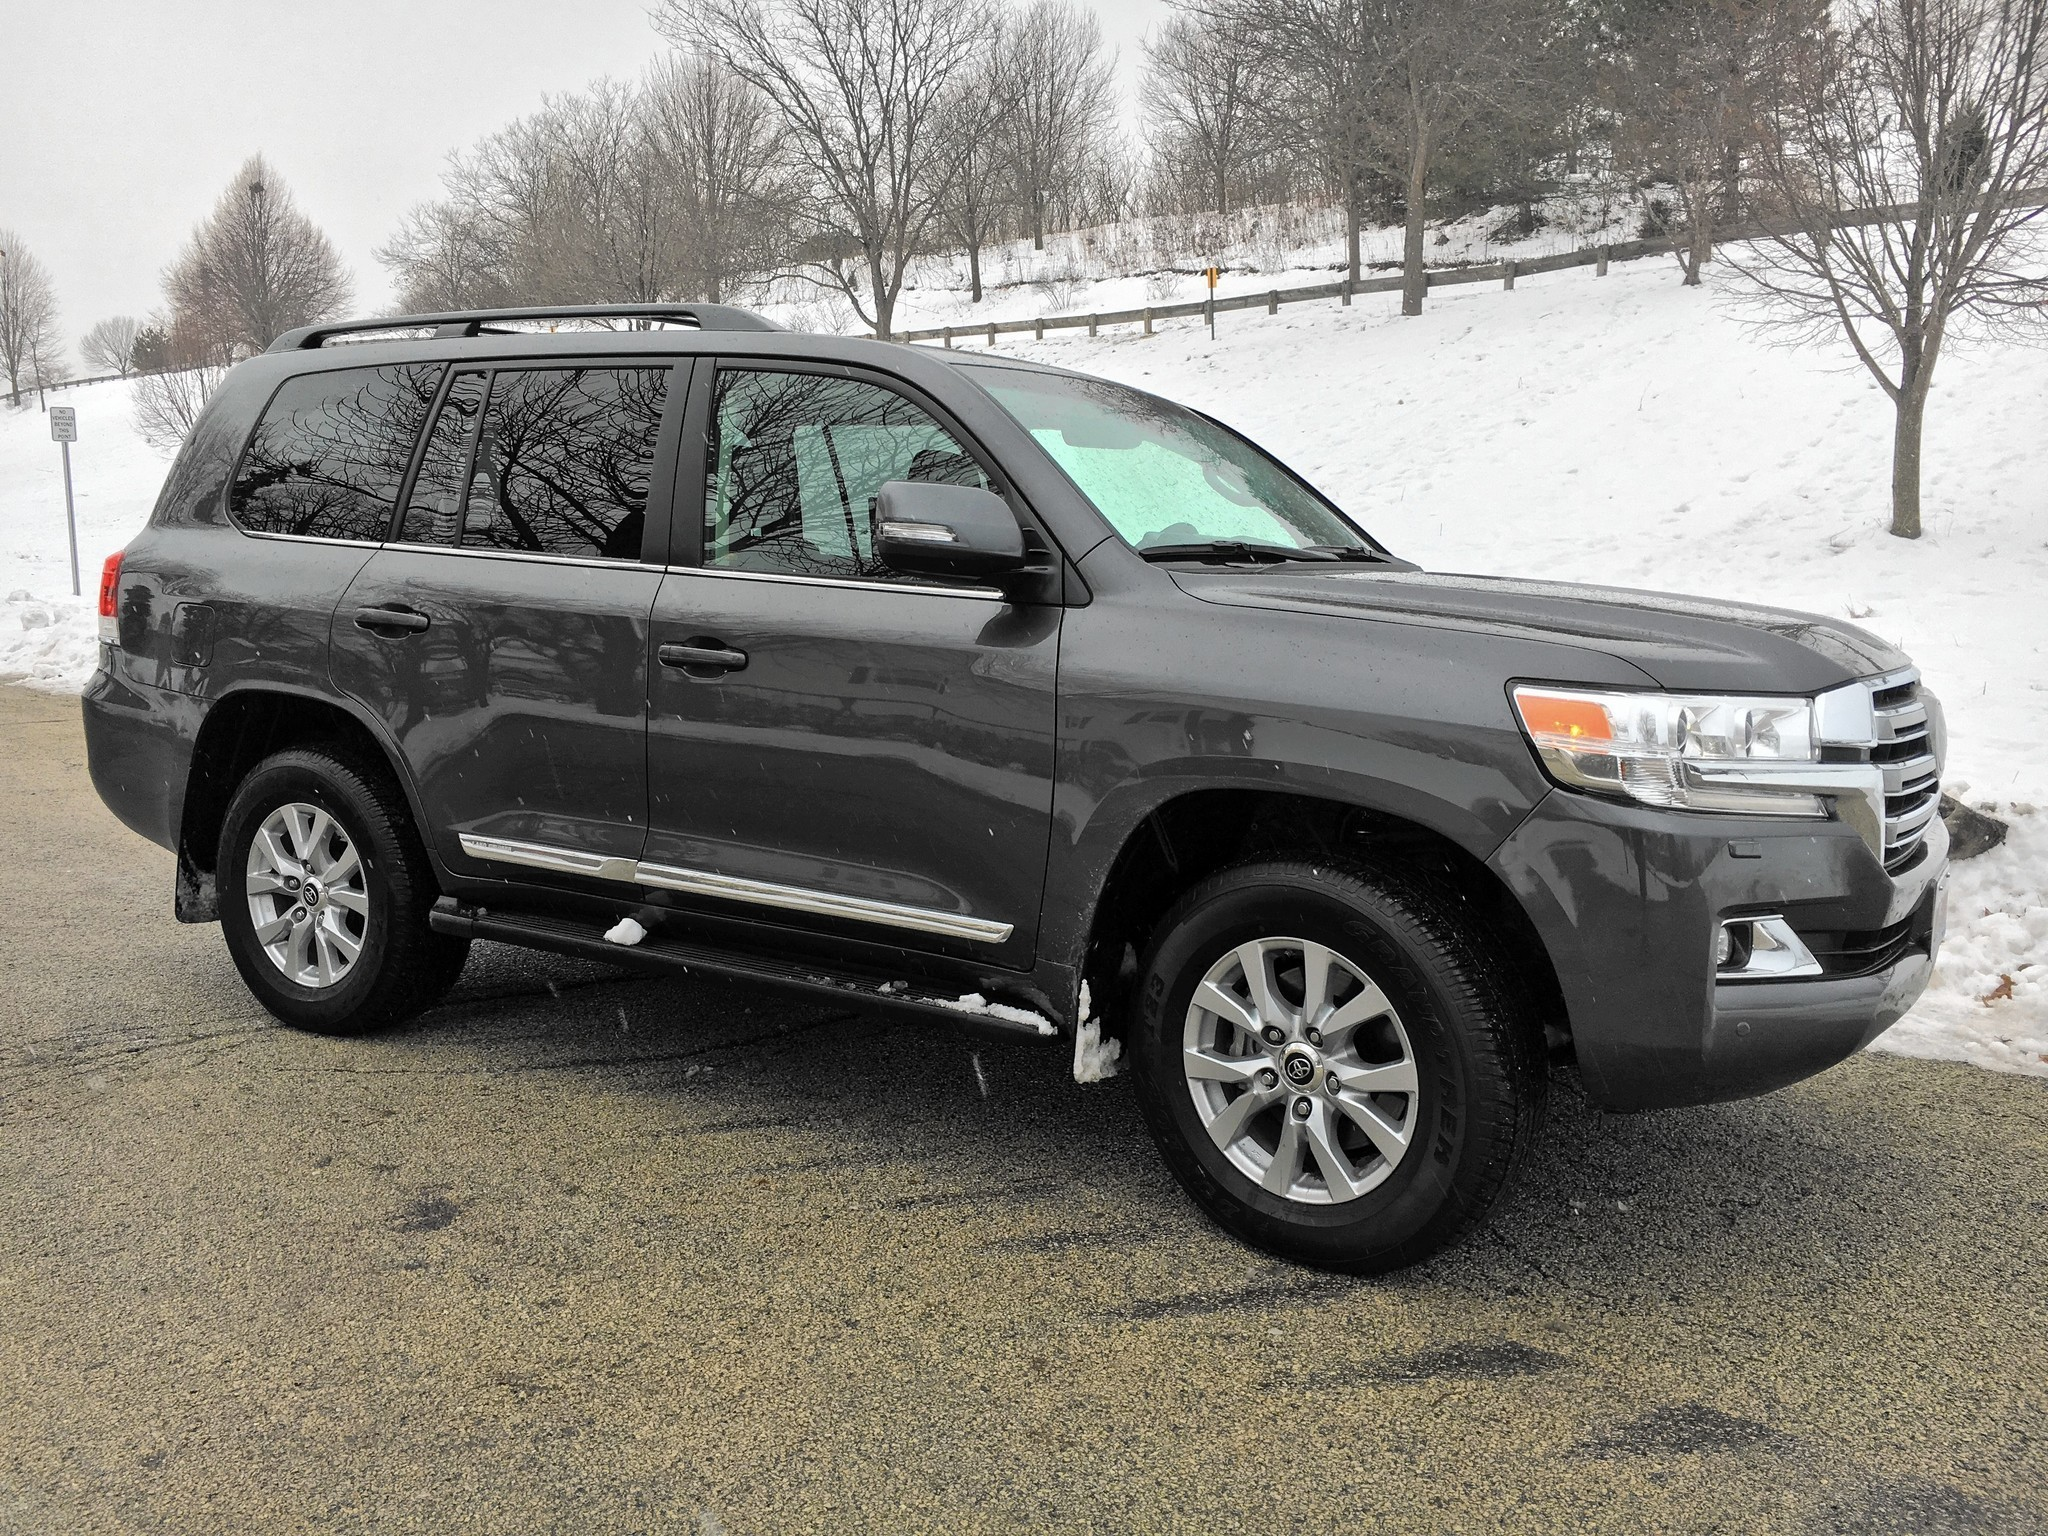 Toyota land cruiser needs a full size redesign to stay relevant chicago tribune